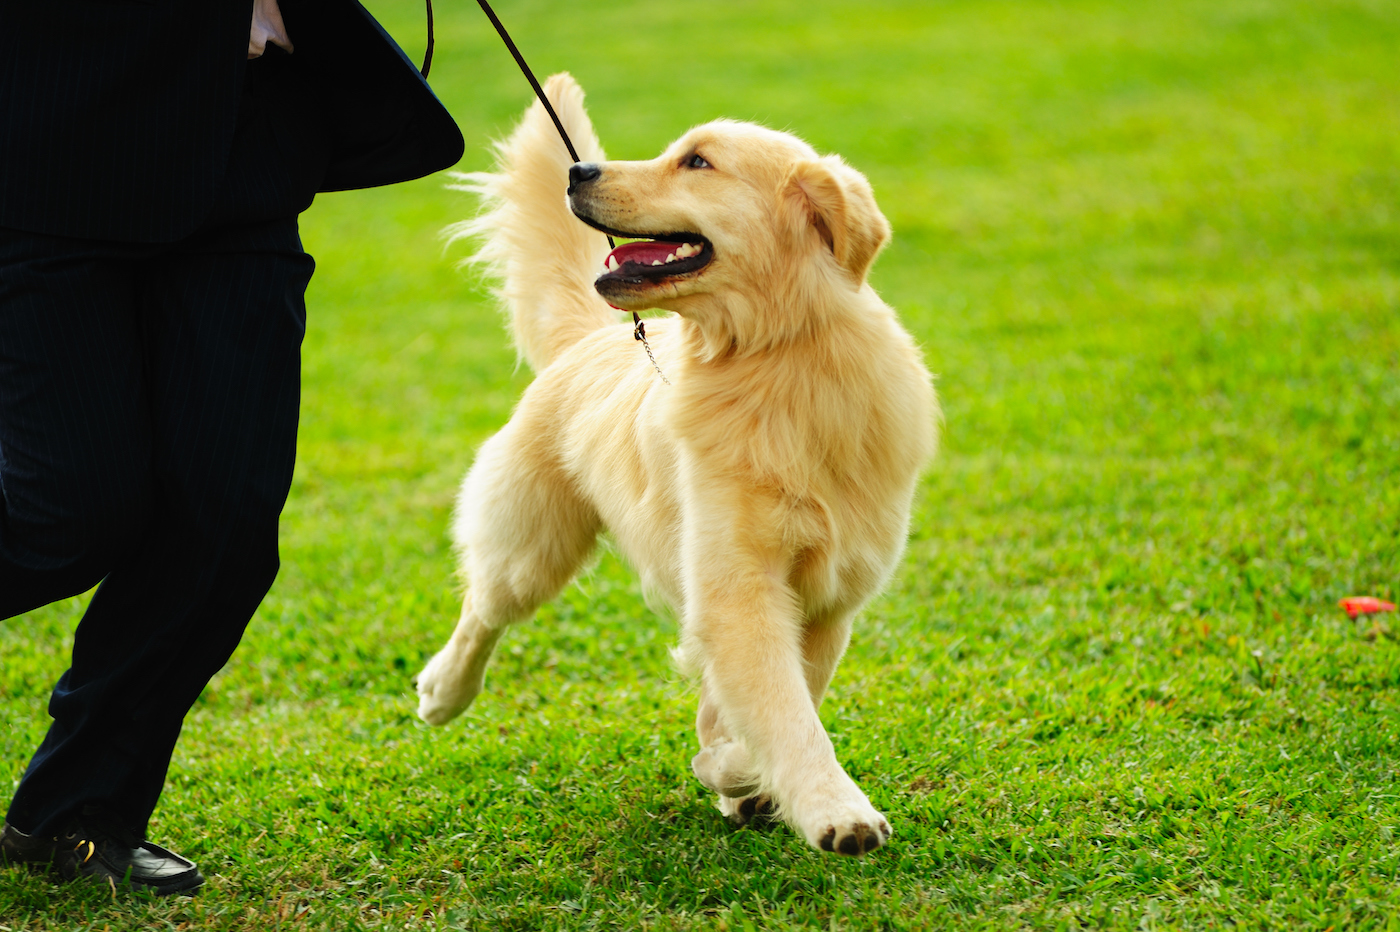 A young adult dog playing with their owner on a beautiful green lawn